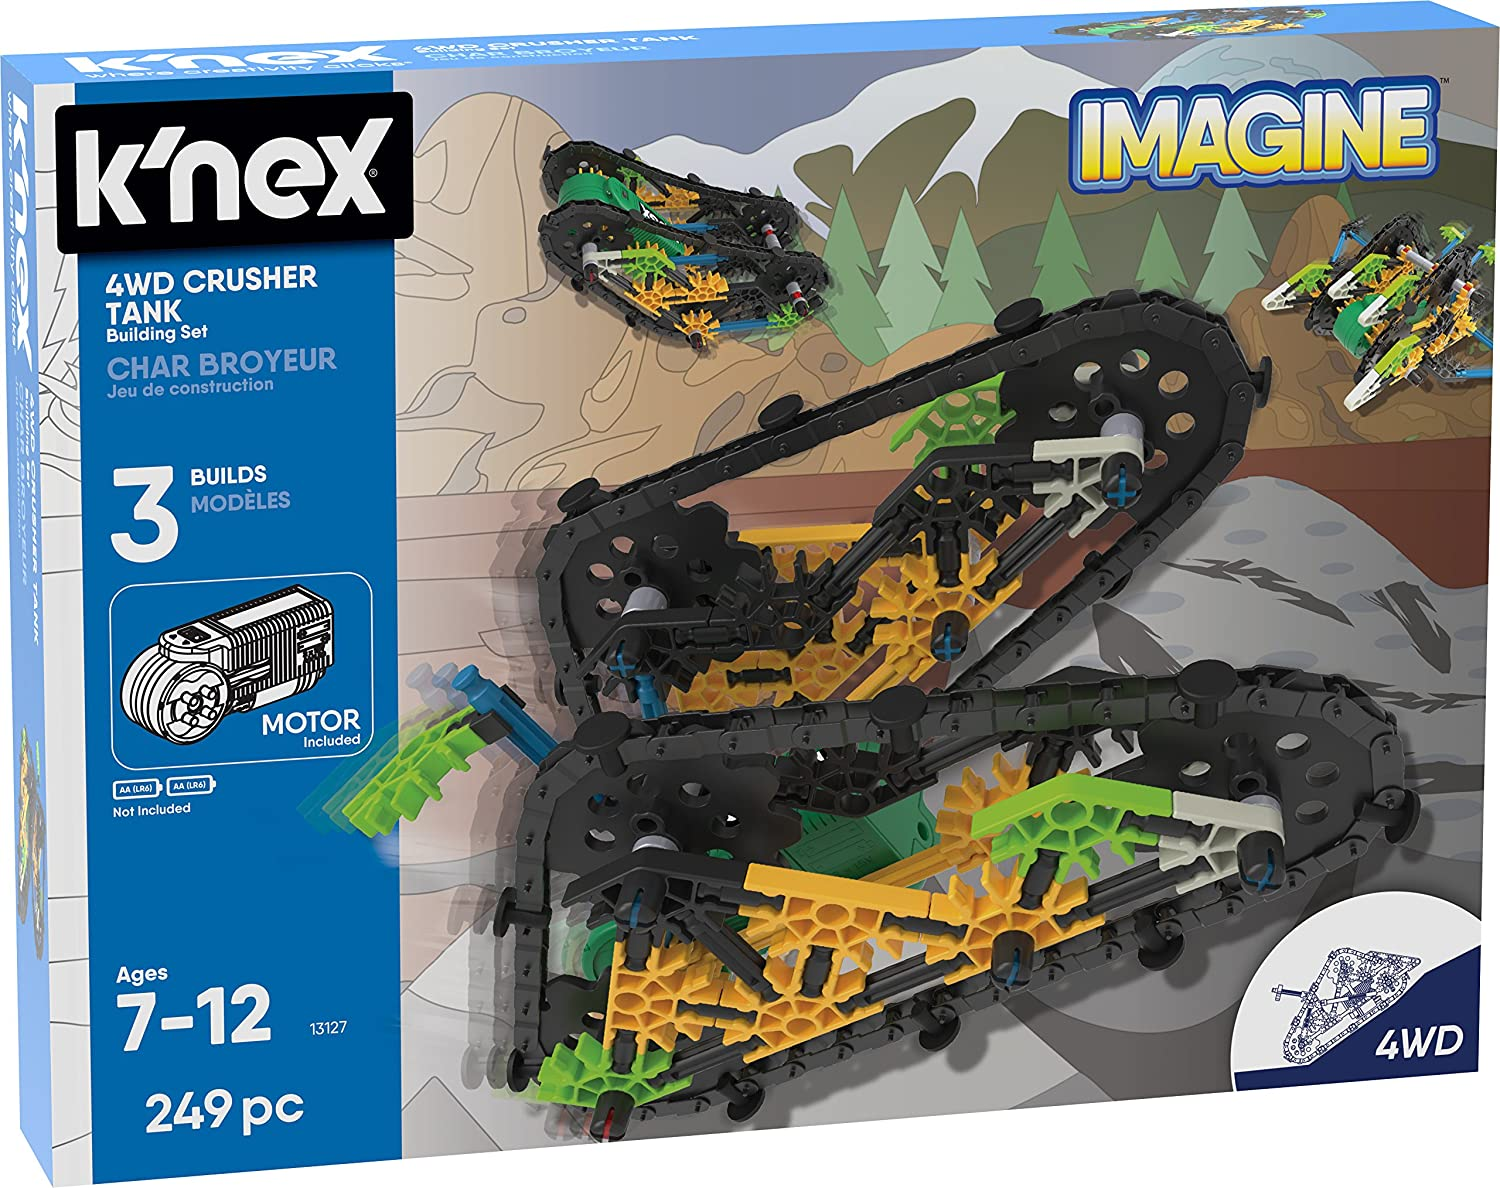 K'NEX 13127 Imagine, 4WD Crusher Tank Building Set, Ages 7+, Engineering Educational Toy, 249 Pieces K'NEX 13127 Imagine